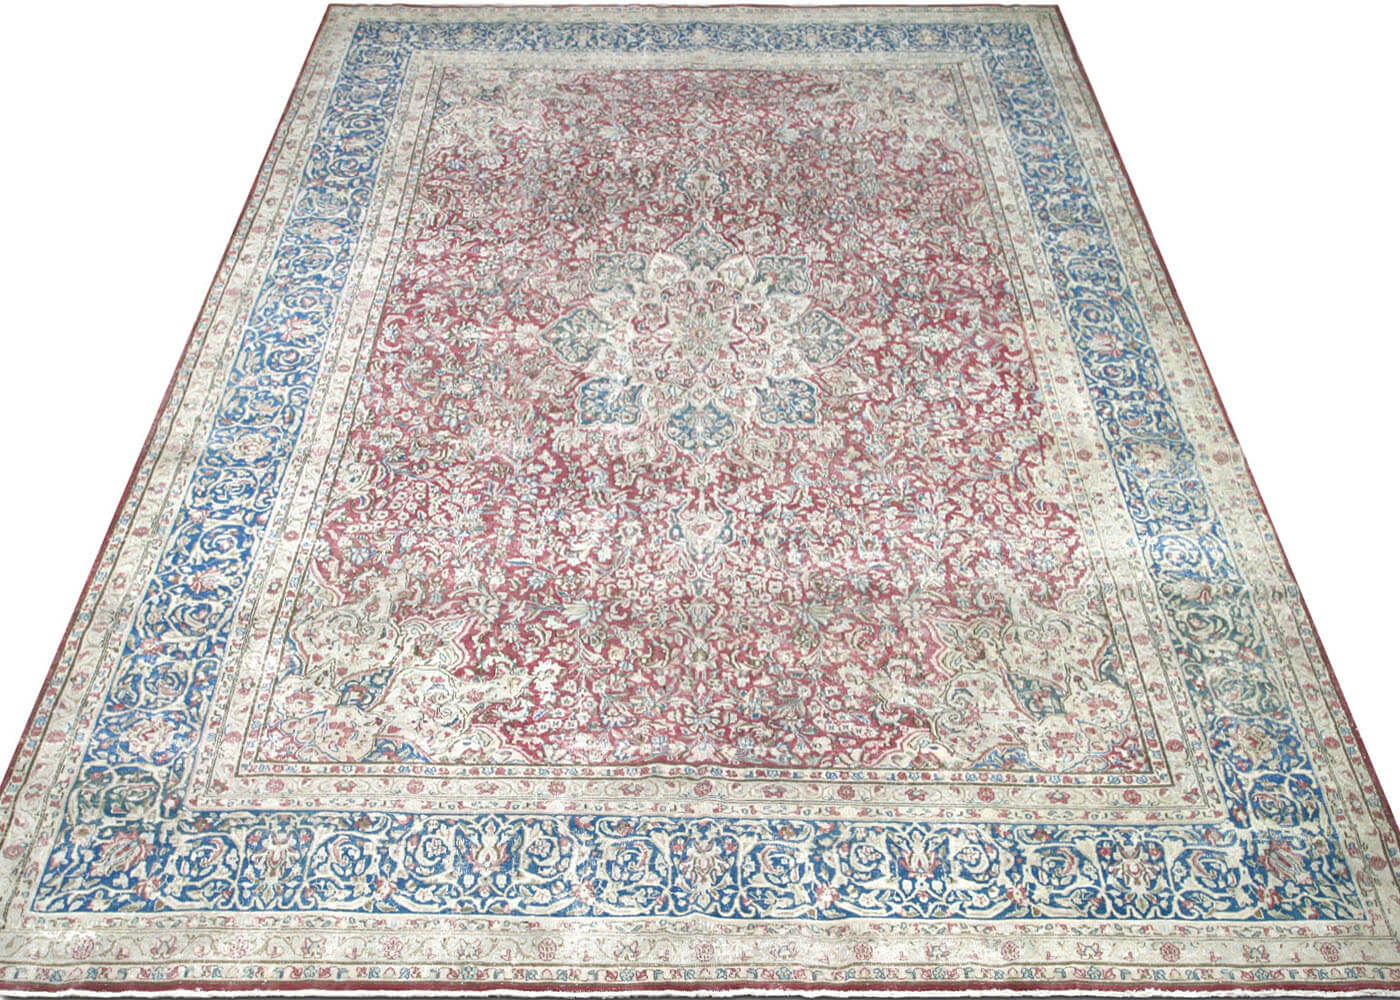 "Vintage Persian Kerman Carpet - 10'11"" x 16'"